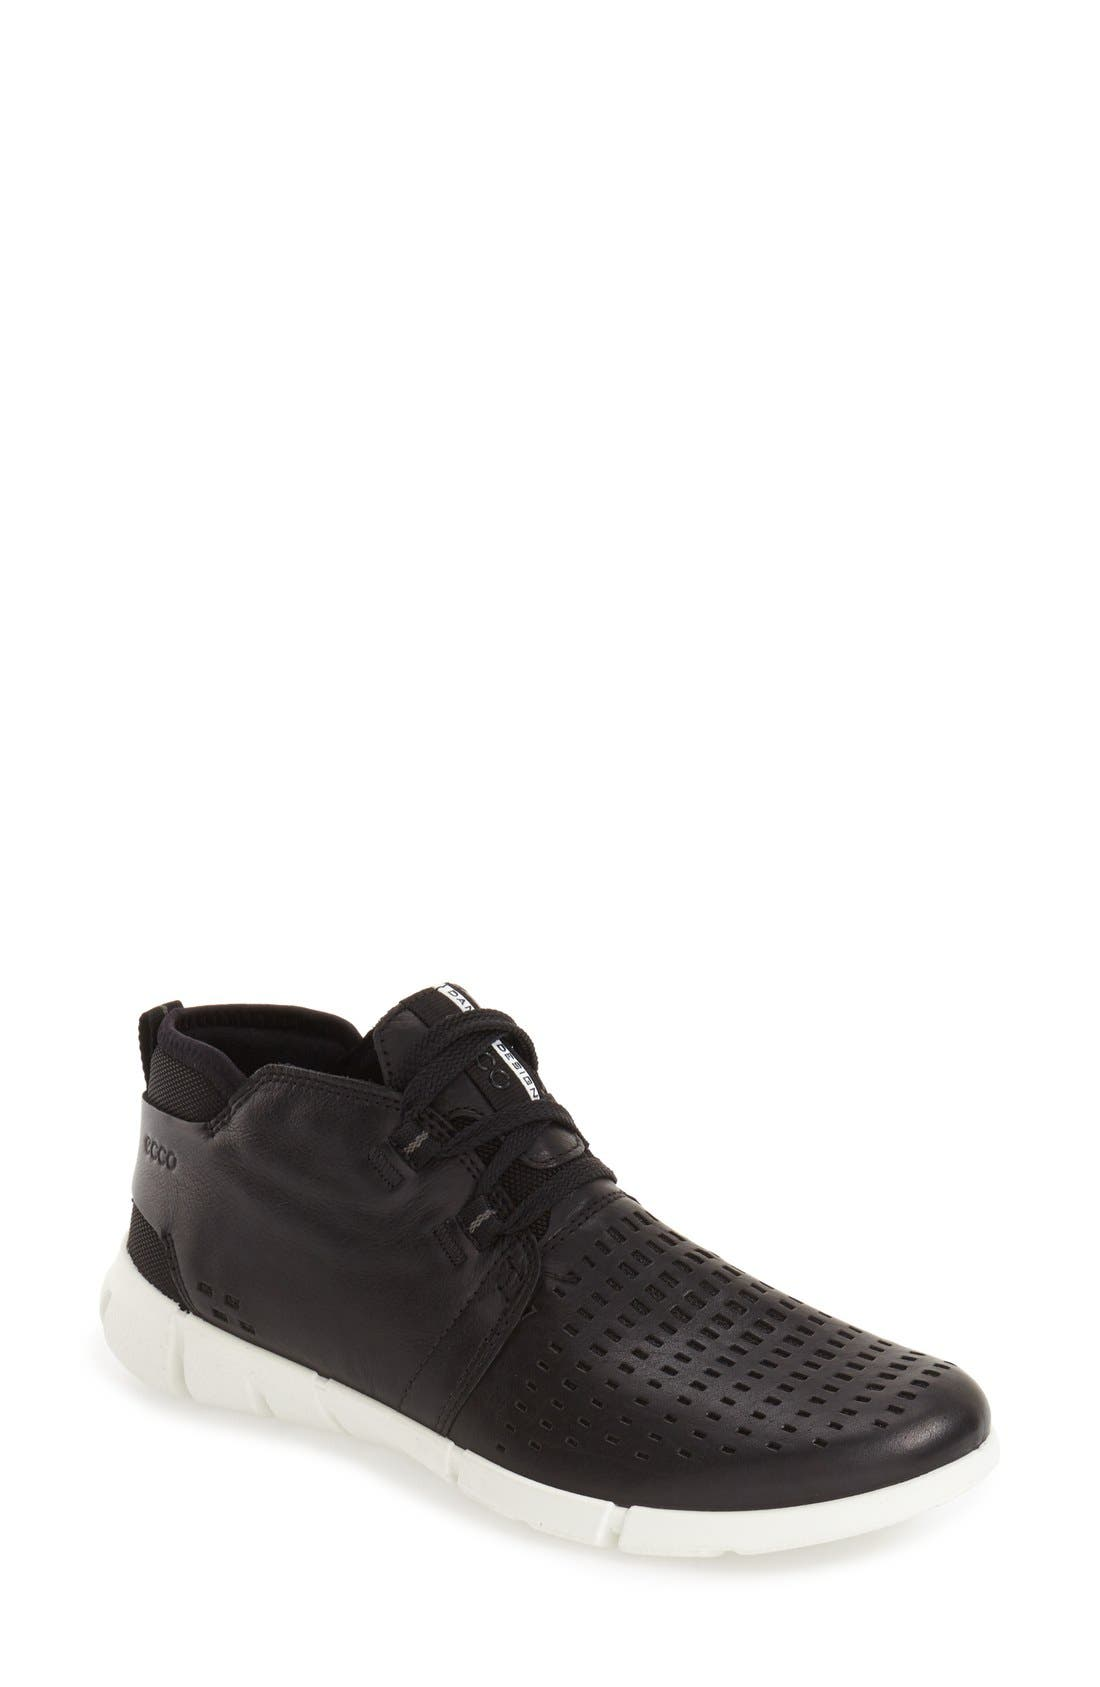 'Intrinsic' Chukka Sneaker,                         Main,                         color, Black Leather